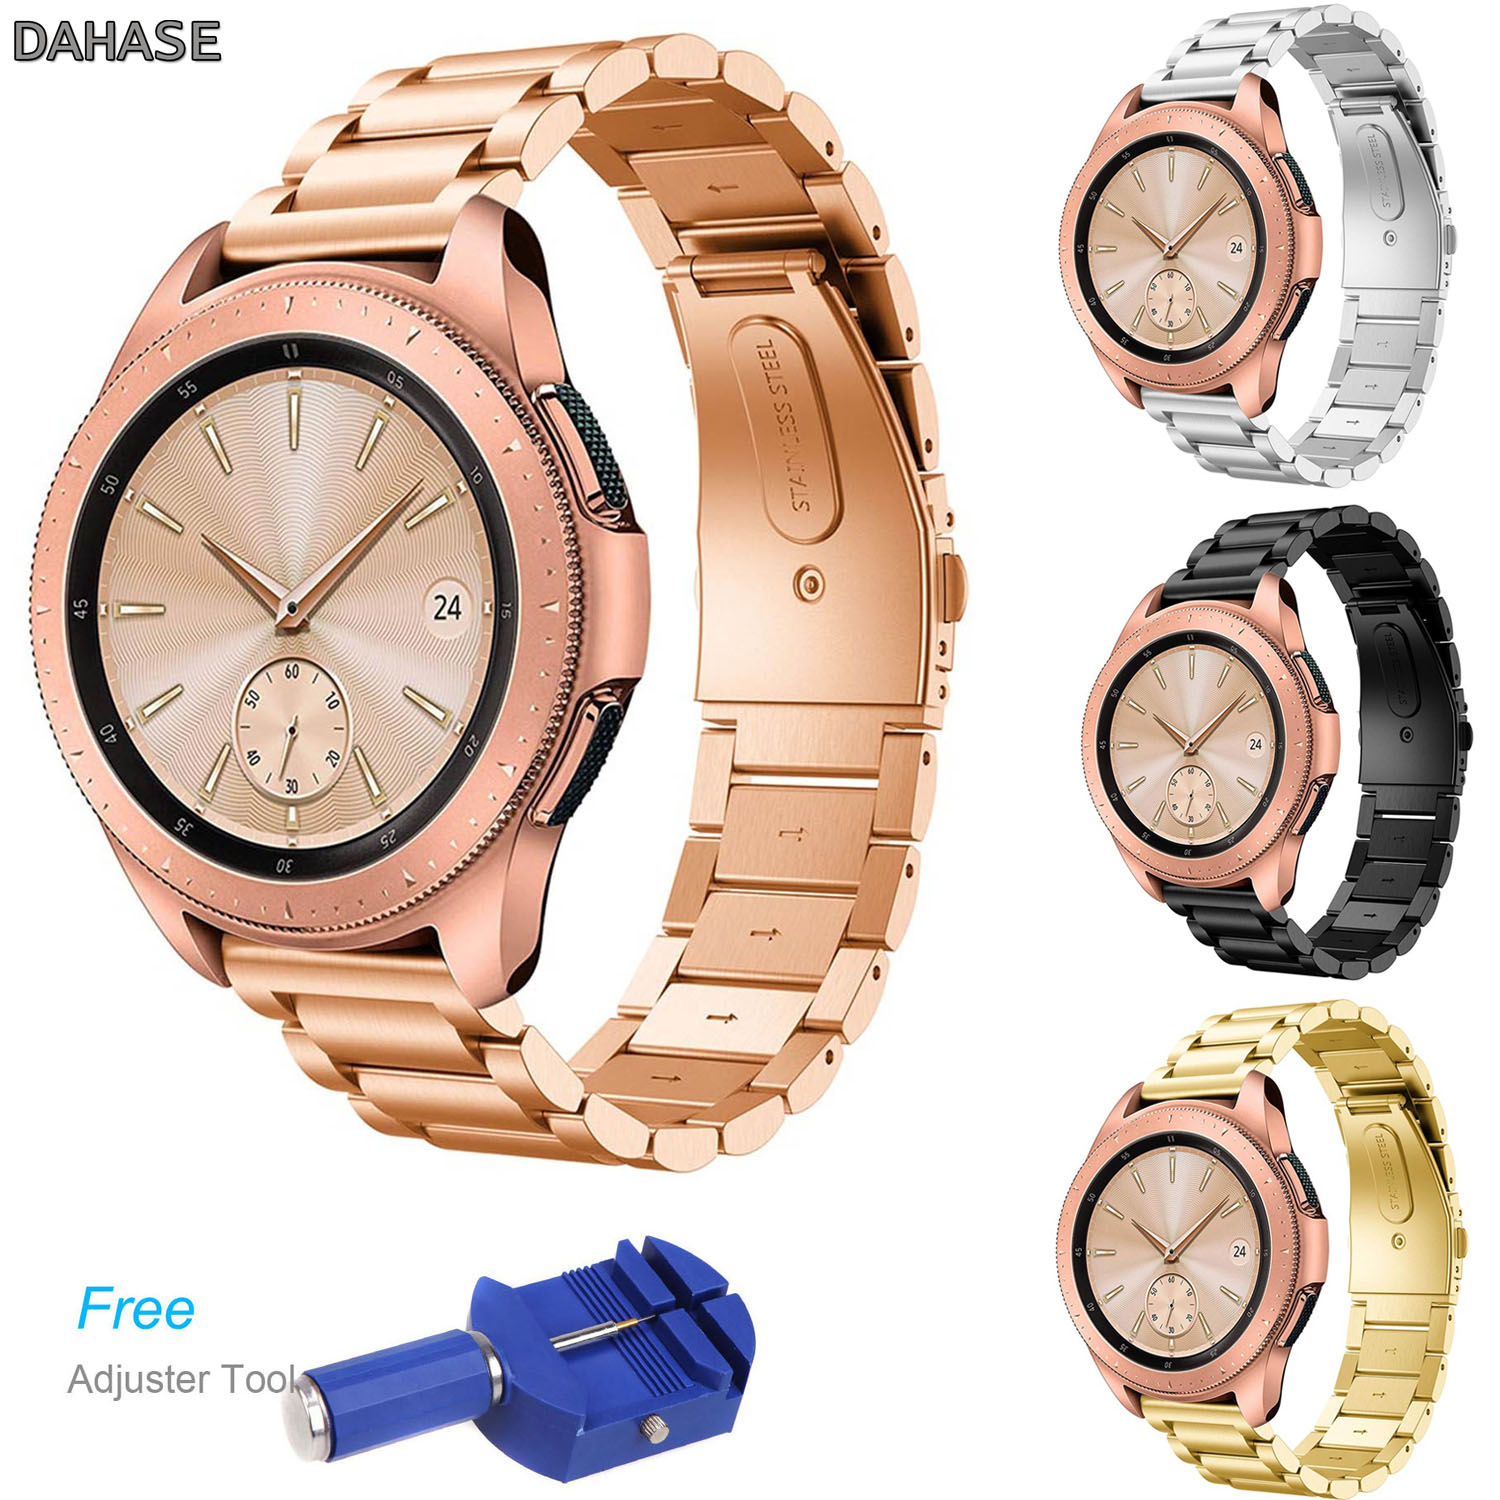 DAHASE Stainless Steel Watch Band for Samsung Galaxy Watch 42mm SM-R810 Strap Metal Links Wristband with Quick Release Pins